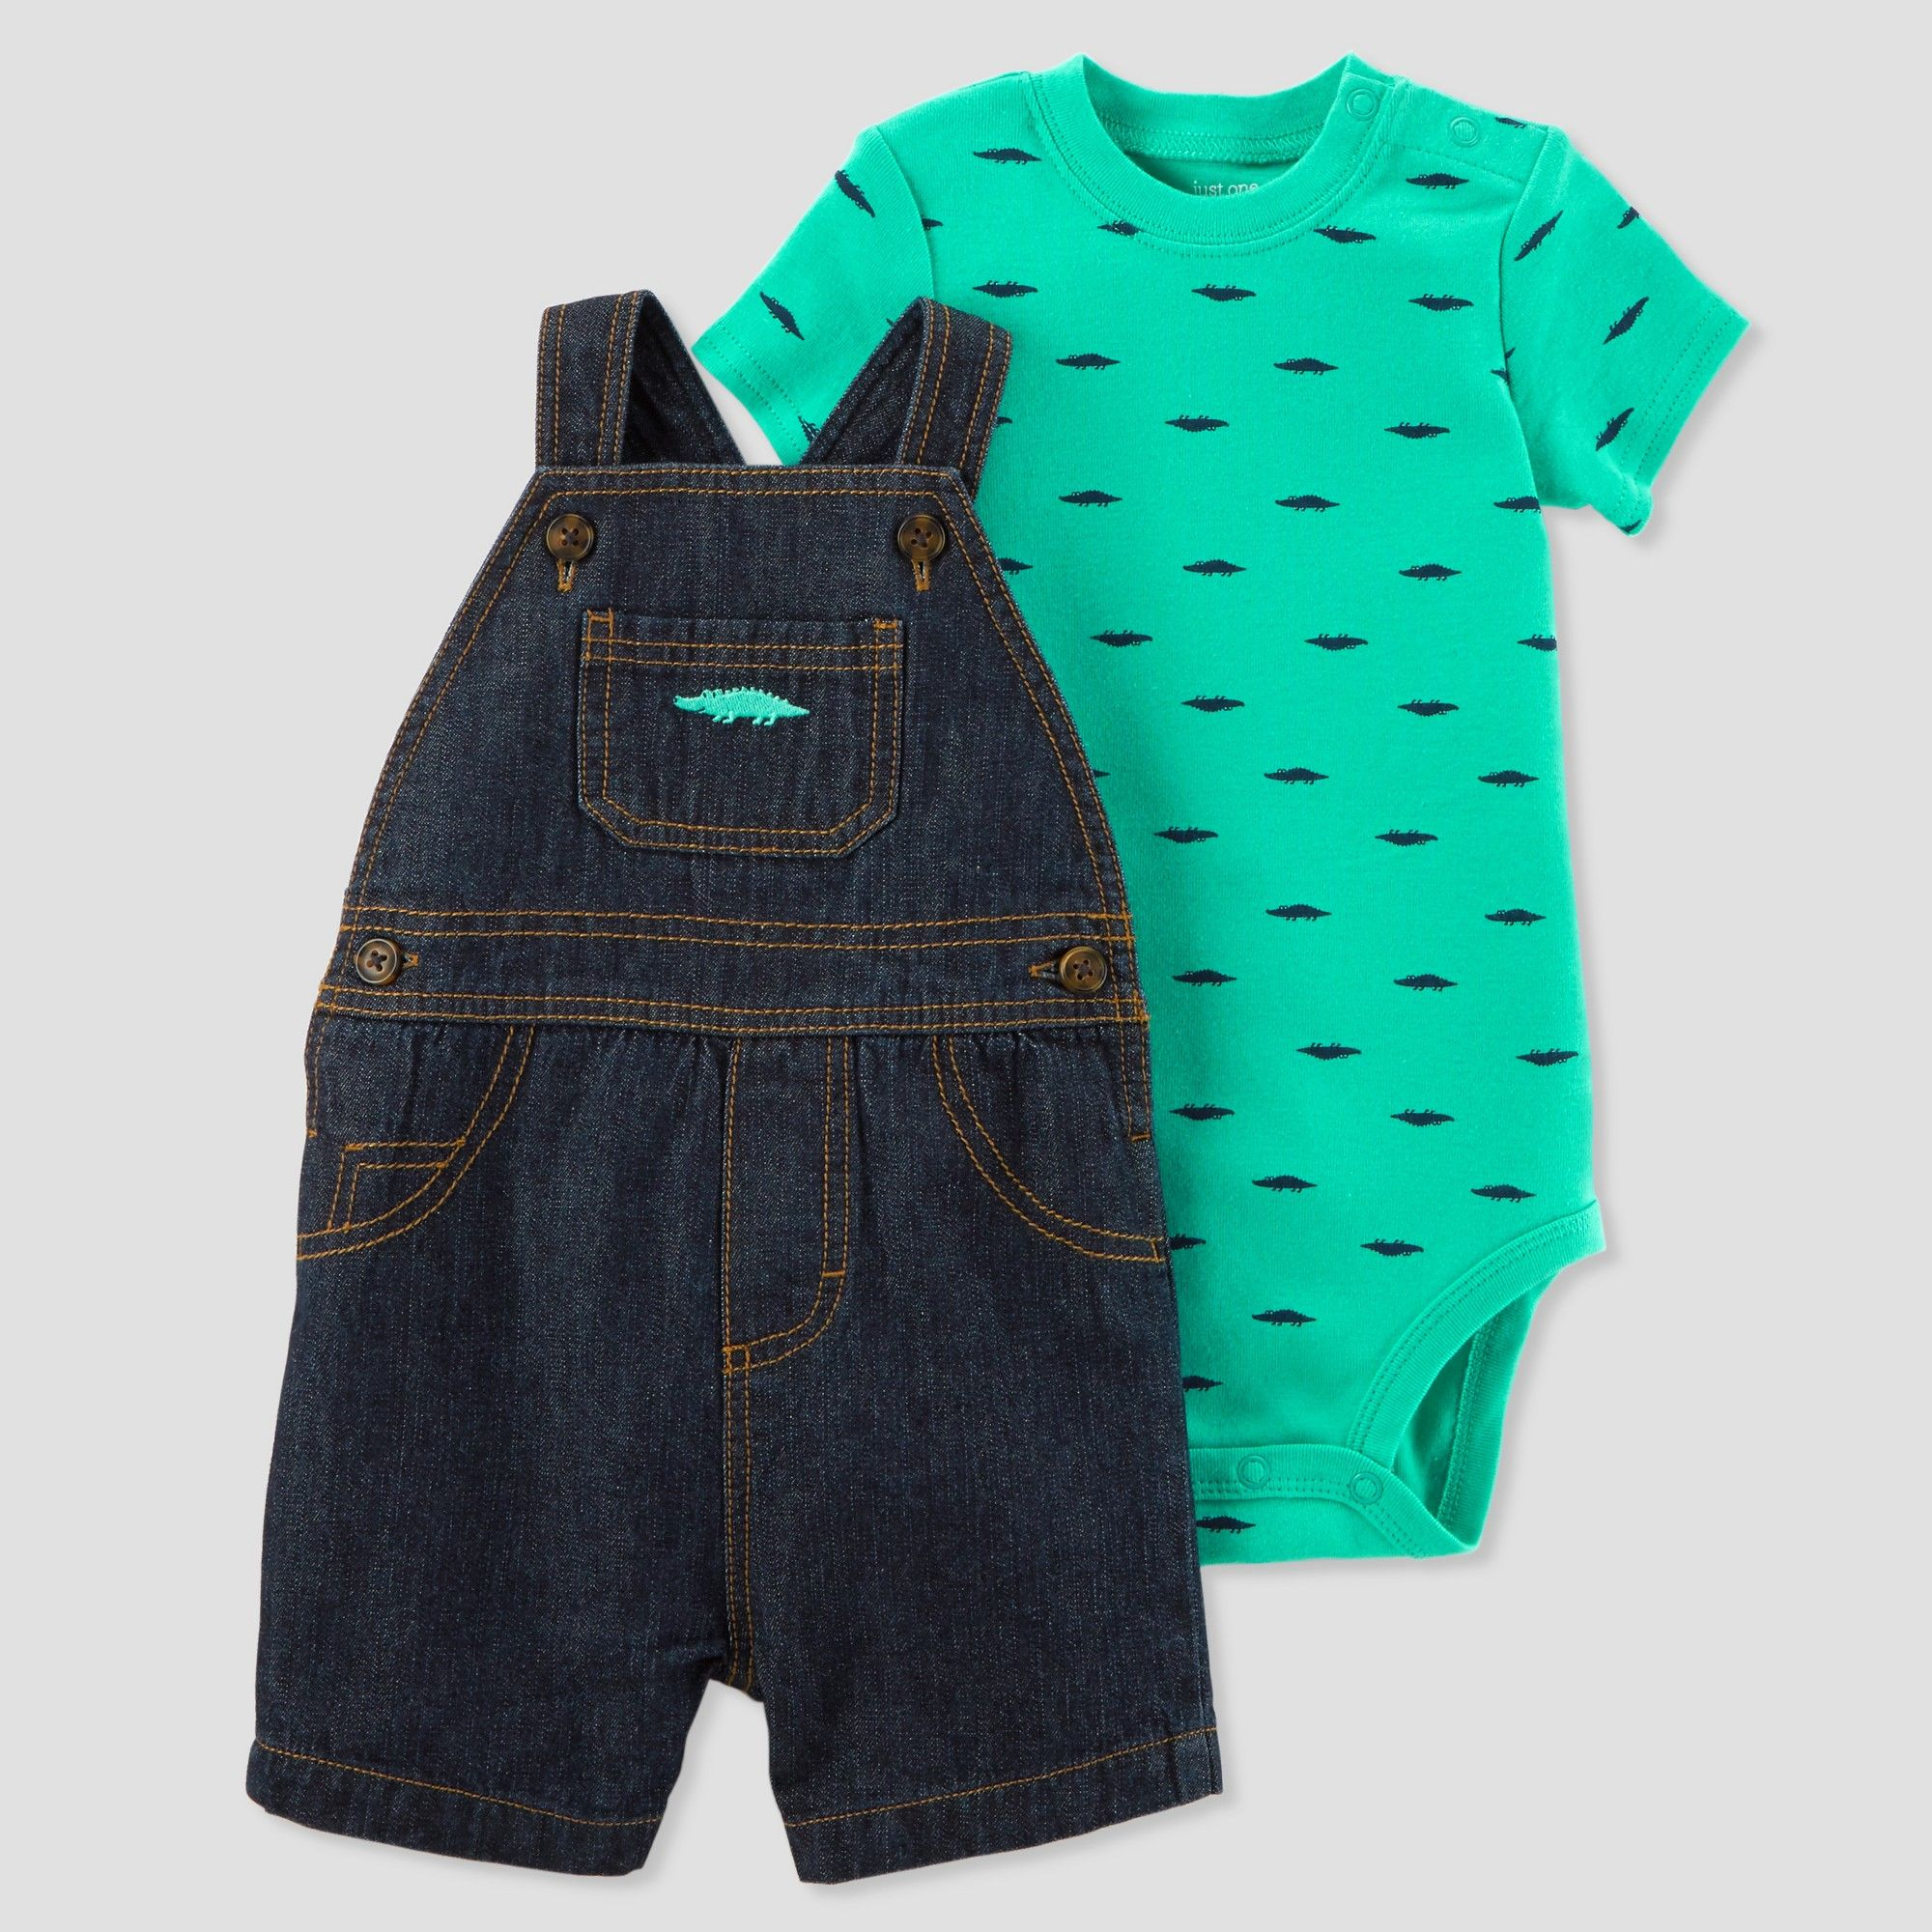 aeb46788d Baby Boys' 2pc Alligator Denim Shortall Set - Just One You made by carter's  Blue/Teal 18M